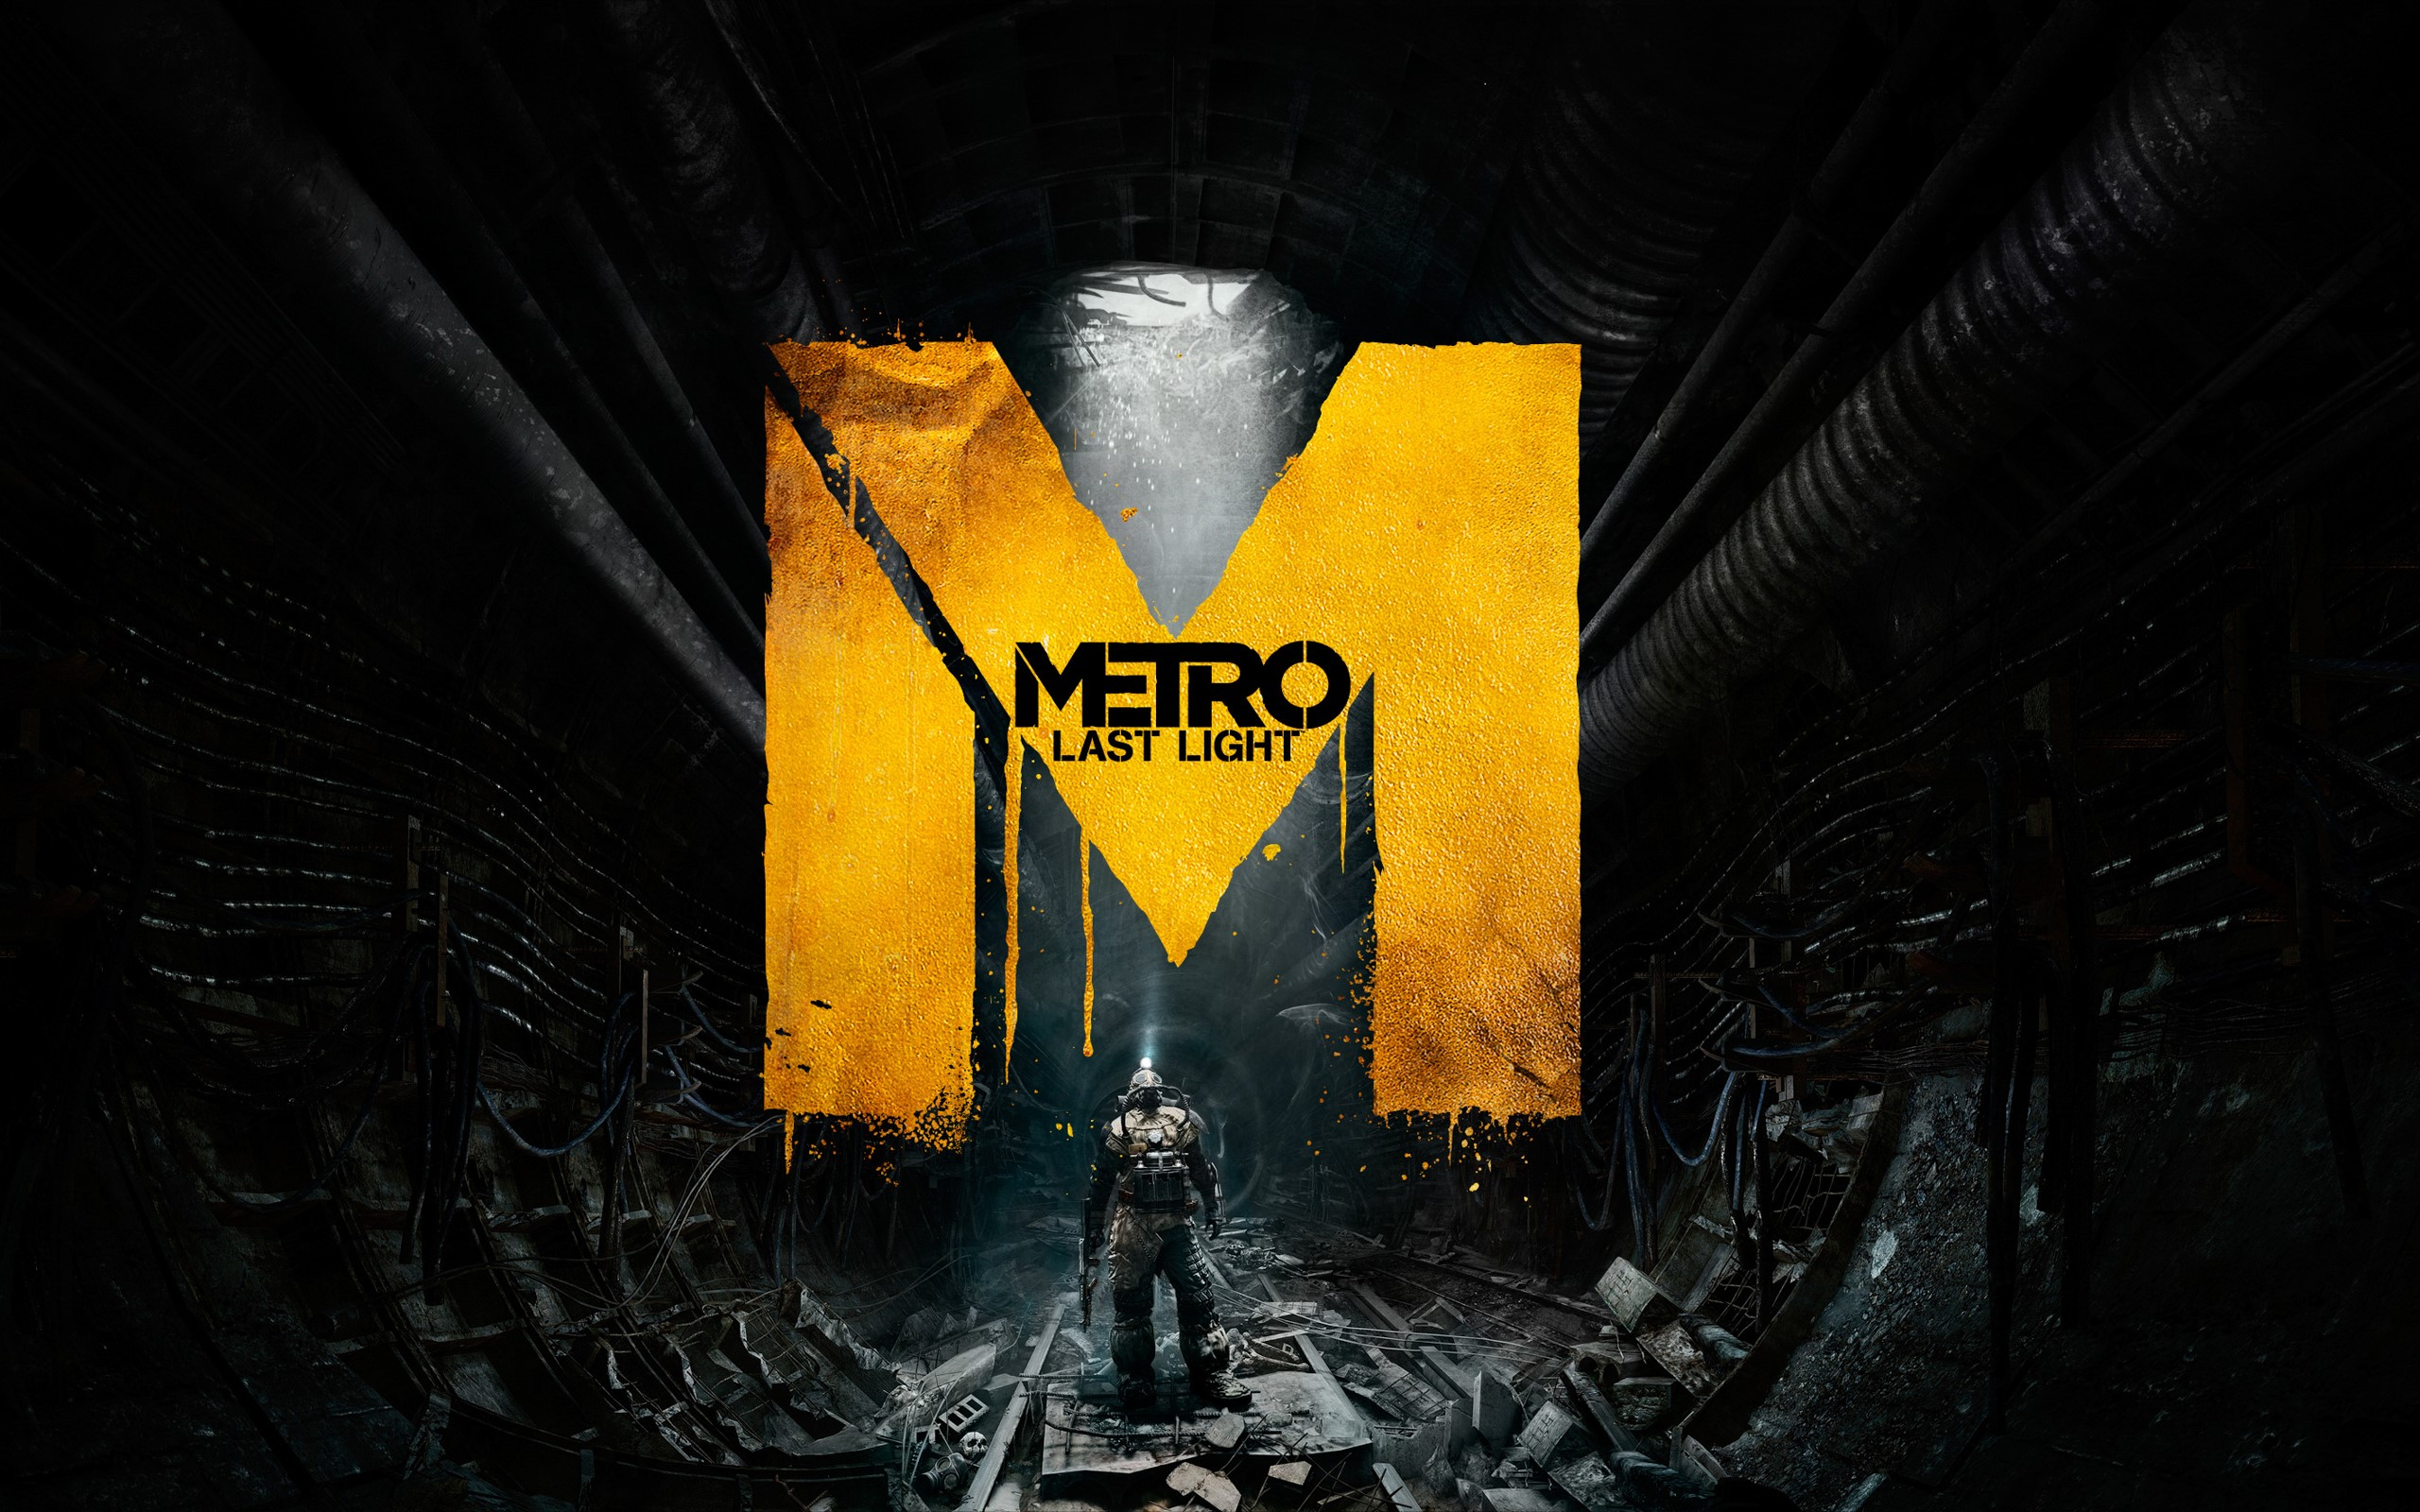 Metro: Last Light + Last Light Ranger Pack (STEAM Key)